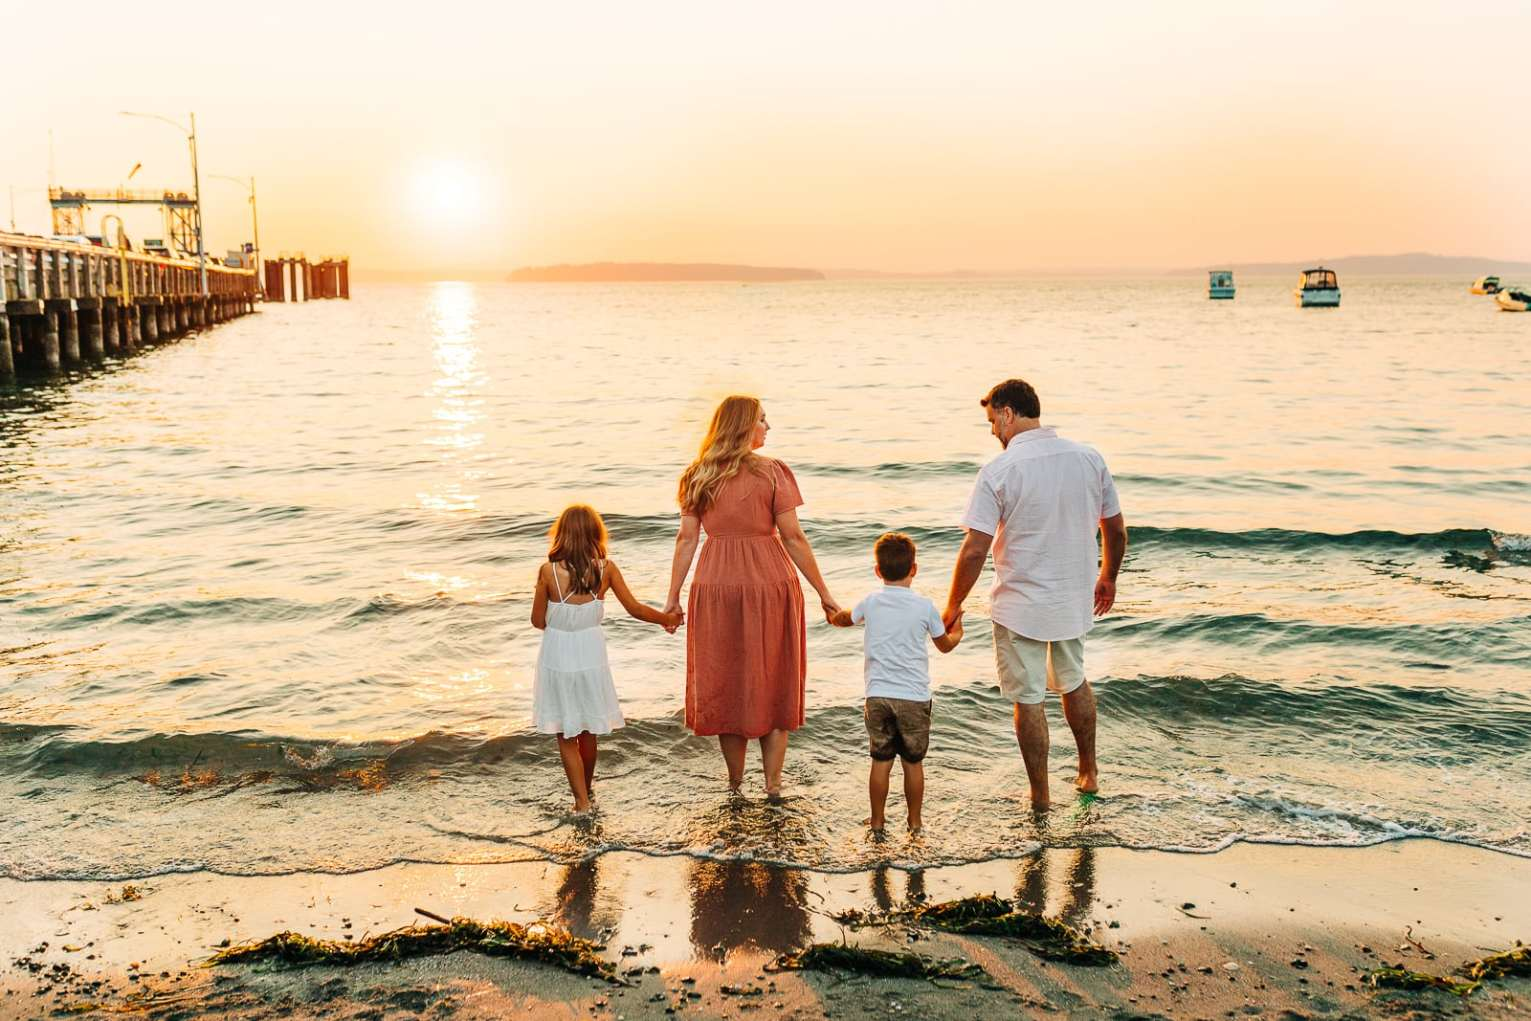 The fauntleroy ferry has a little beach next to it that makes for beautiful family photos.